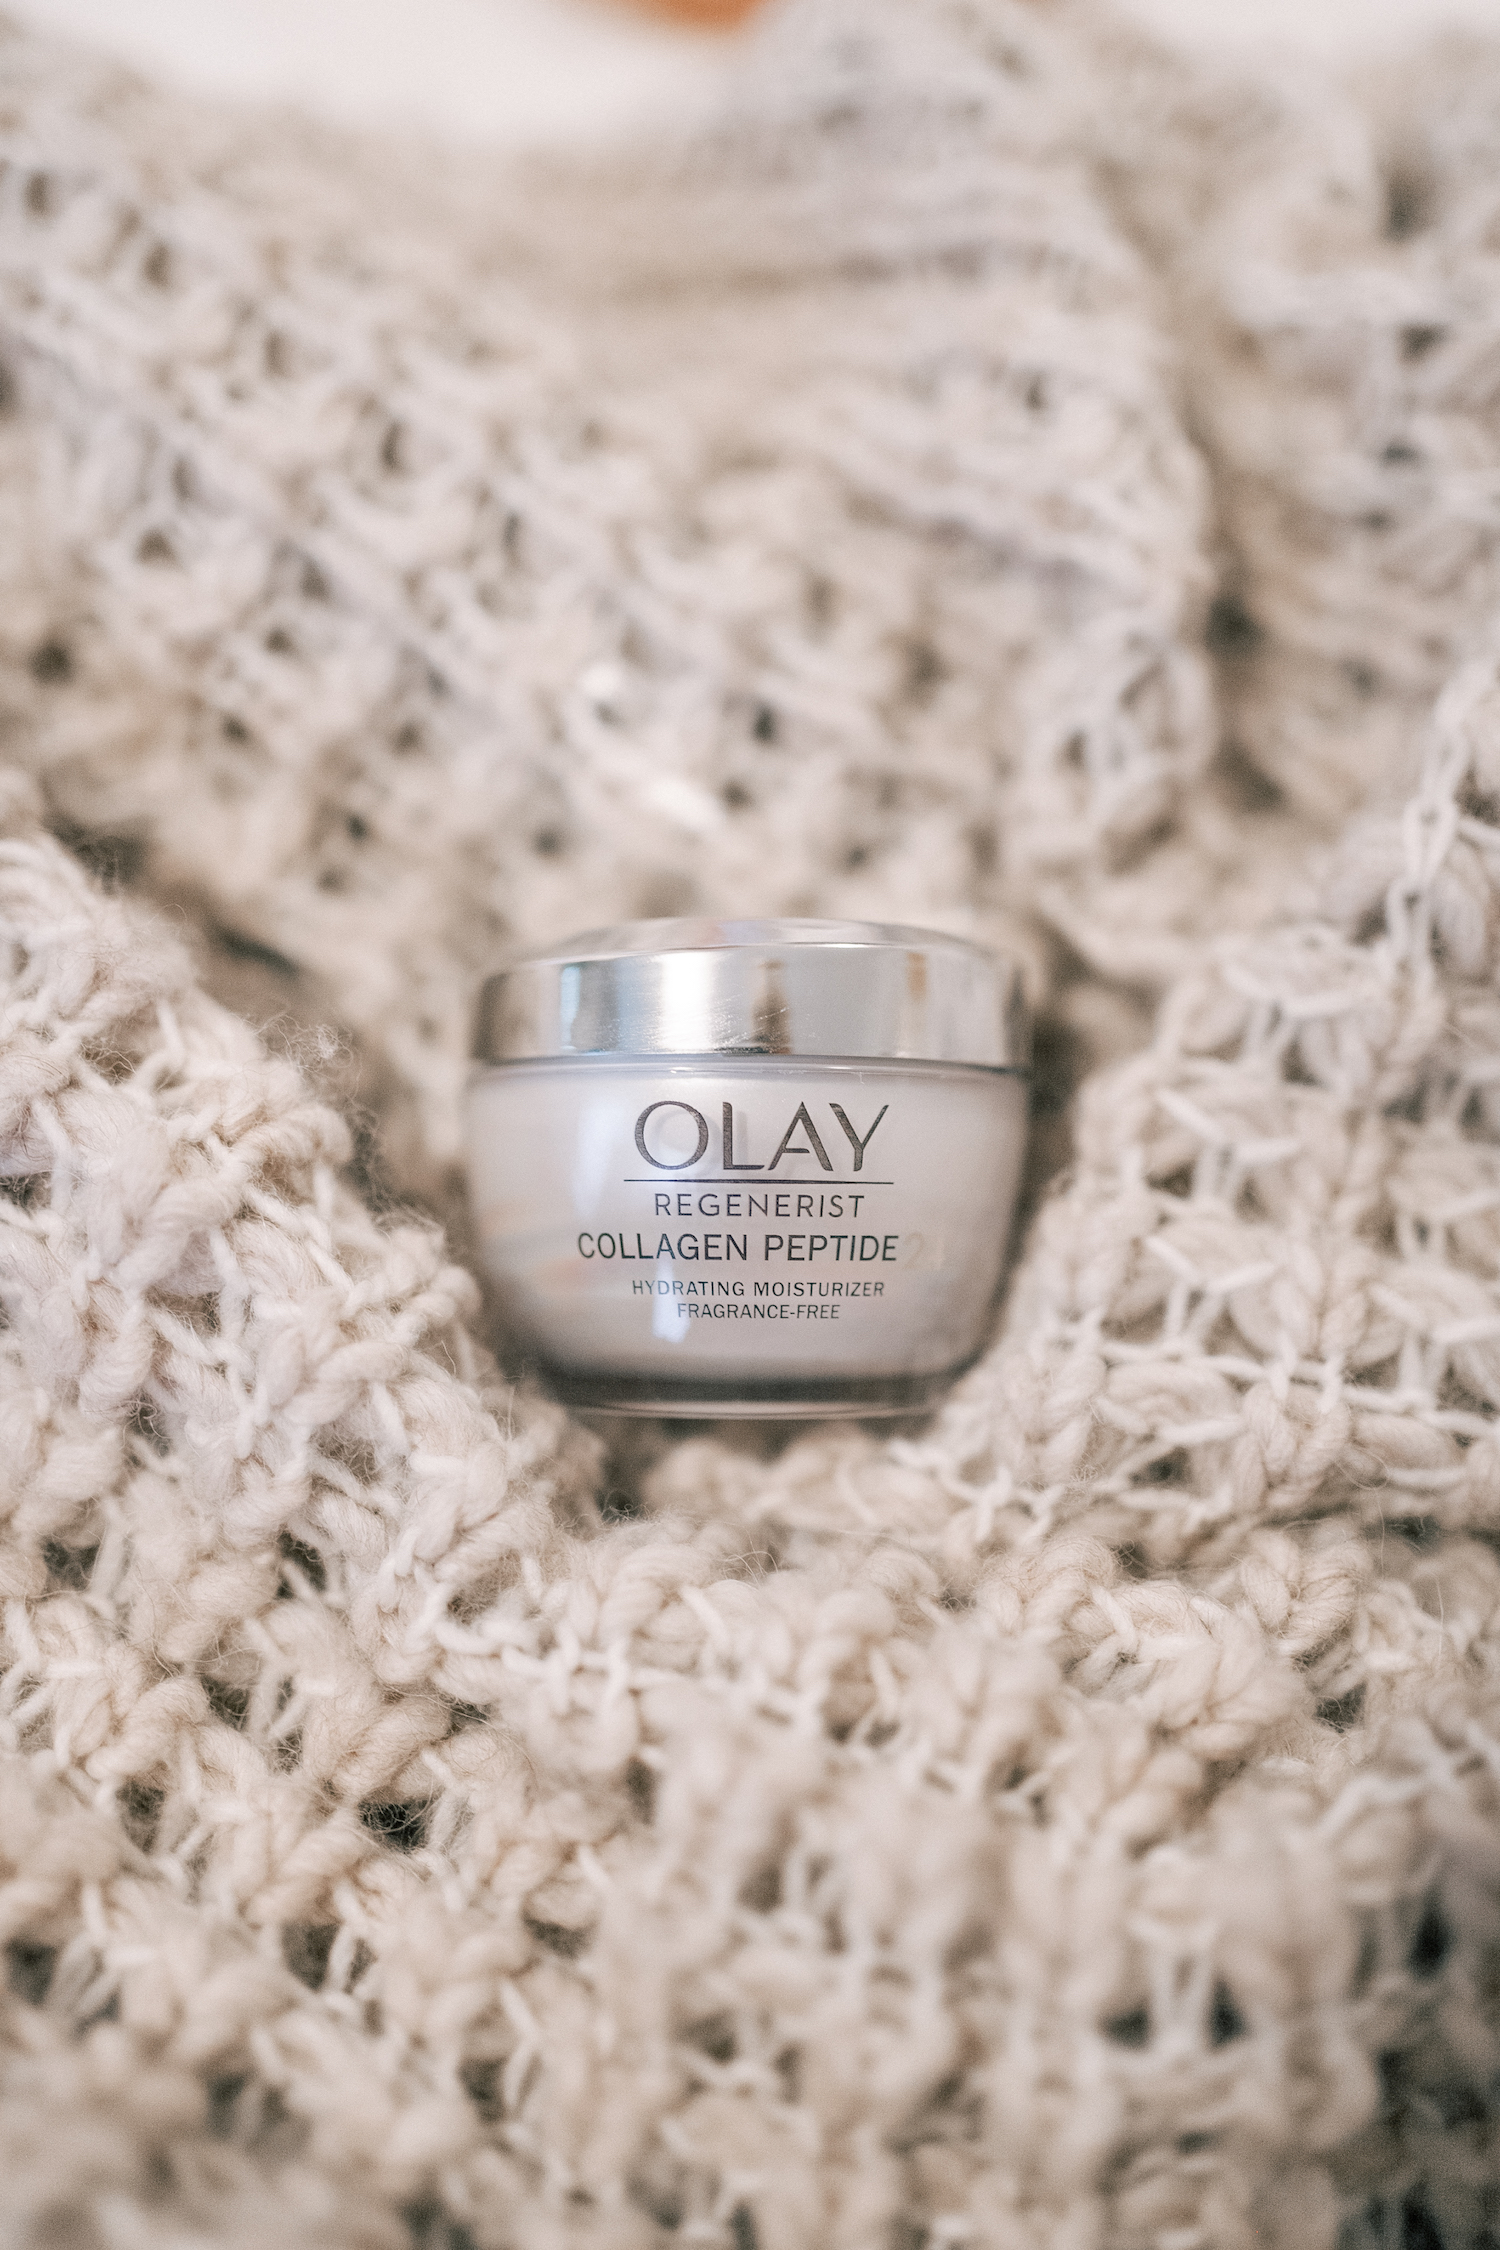 Olay Collagen Peptide24 Review